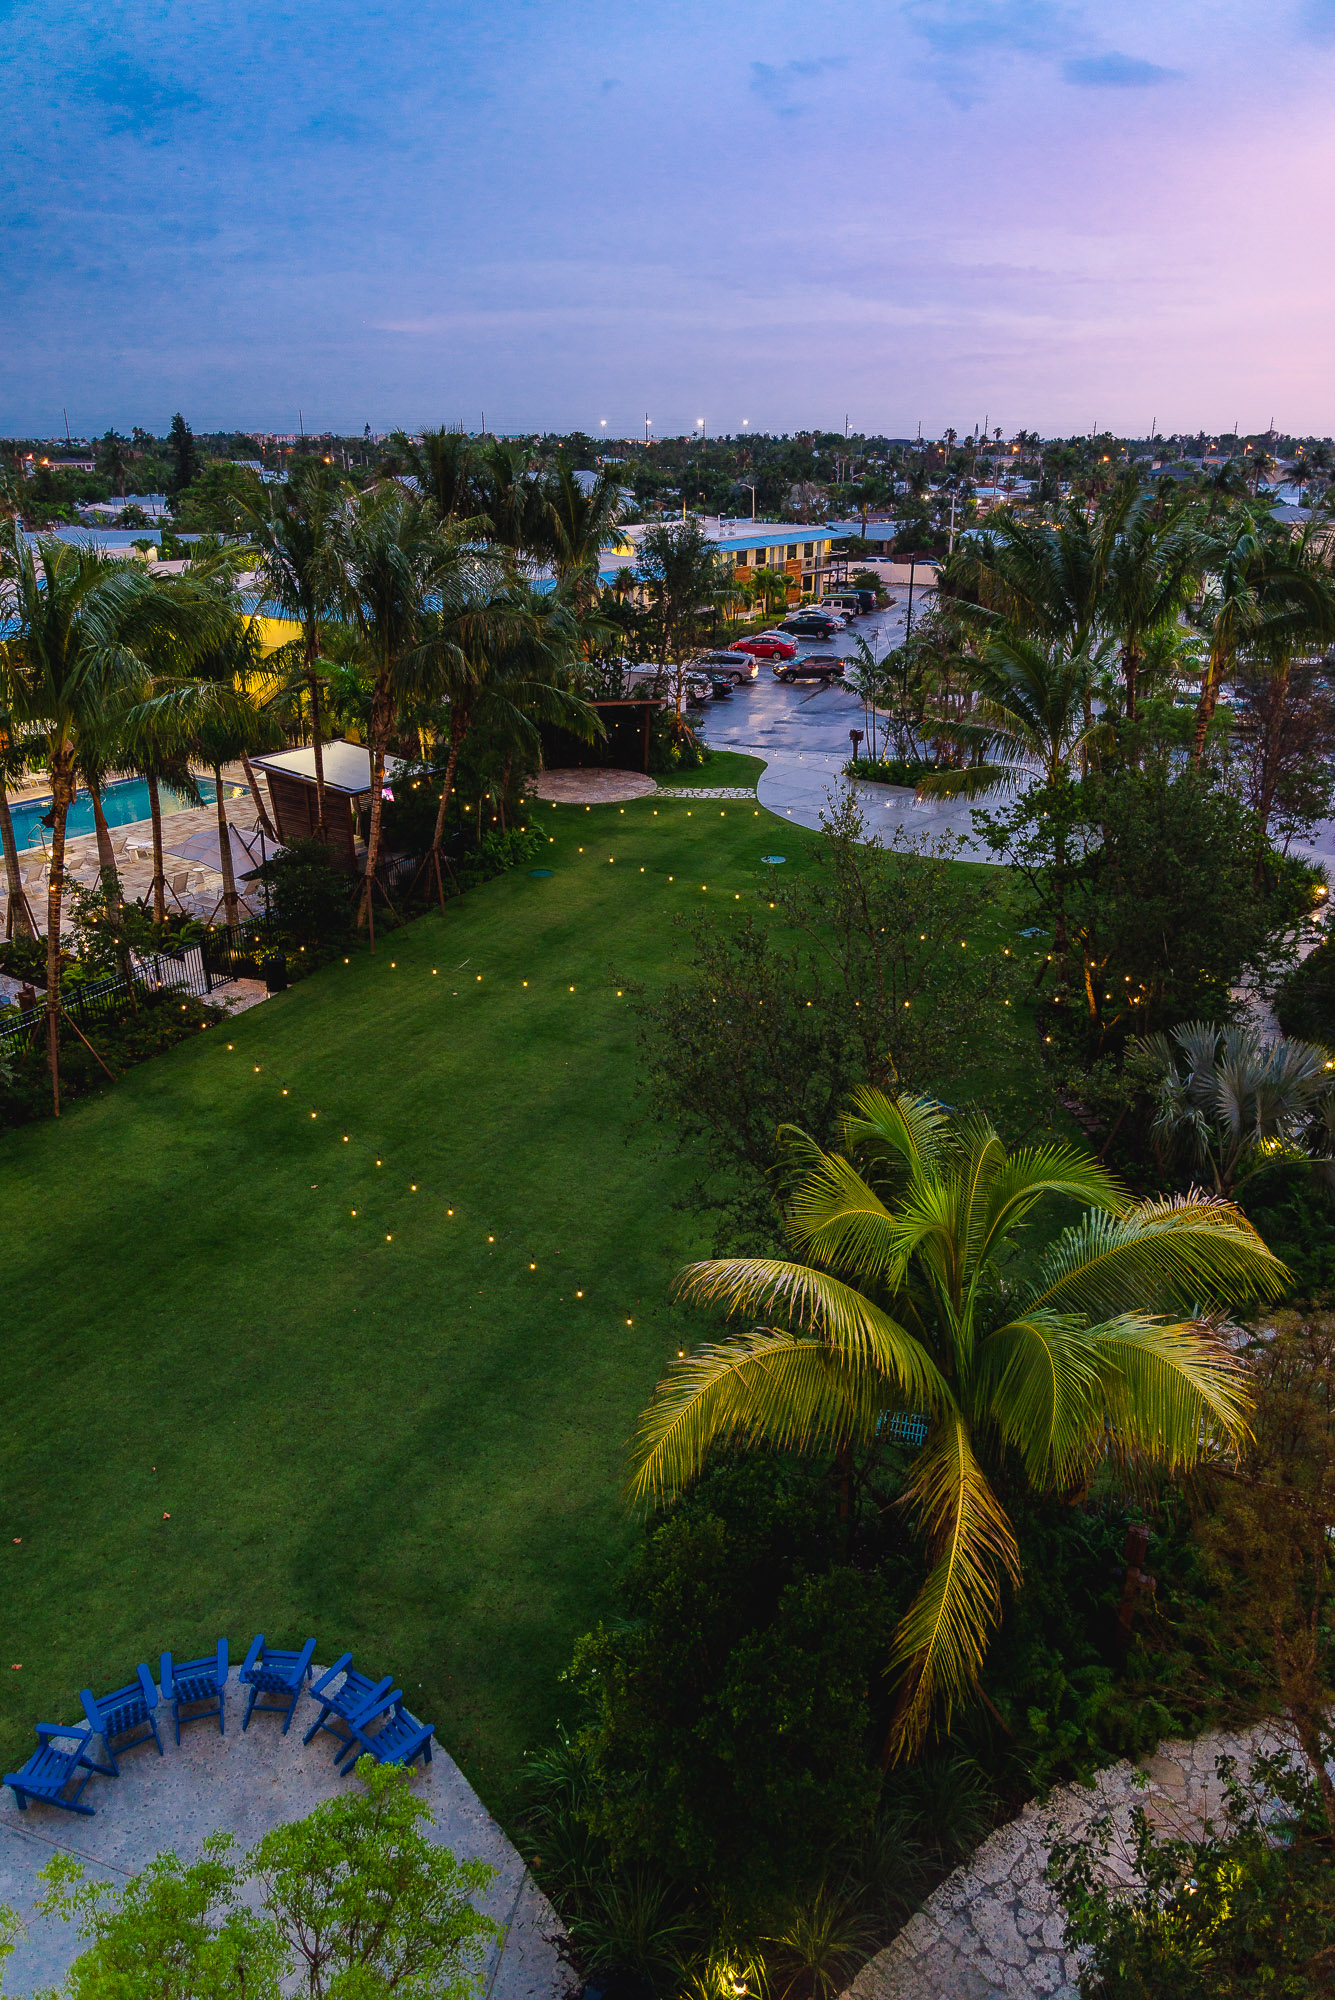 24 north hotel key west sunset green